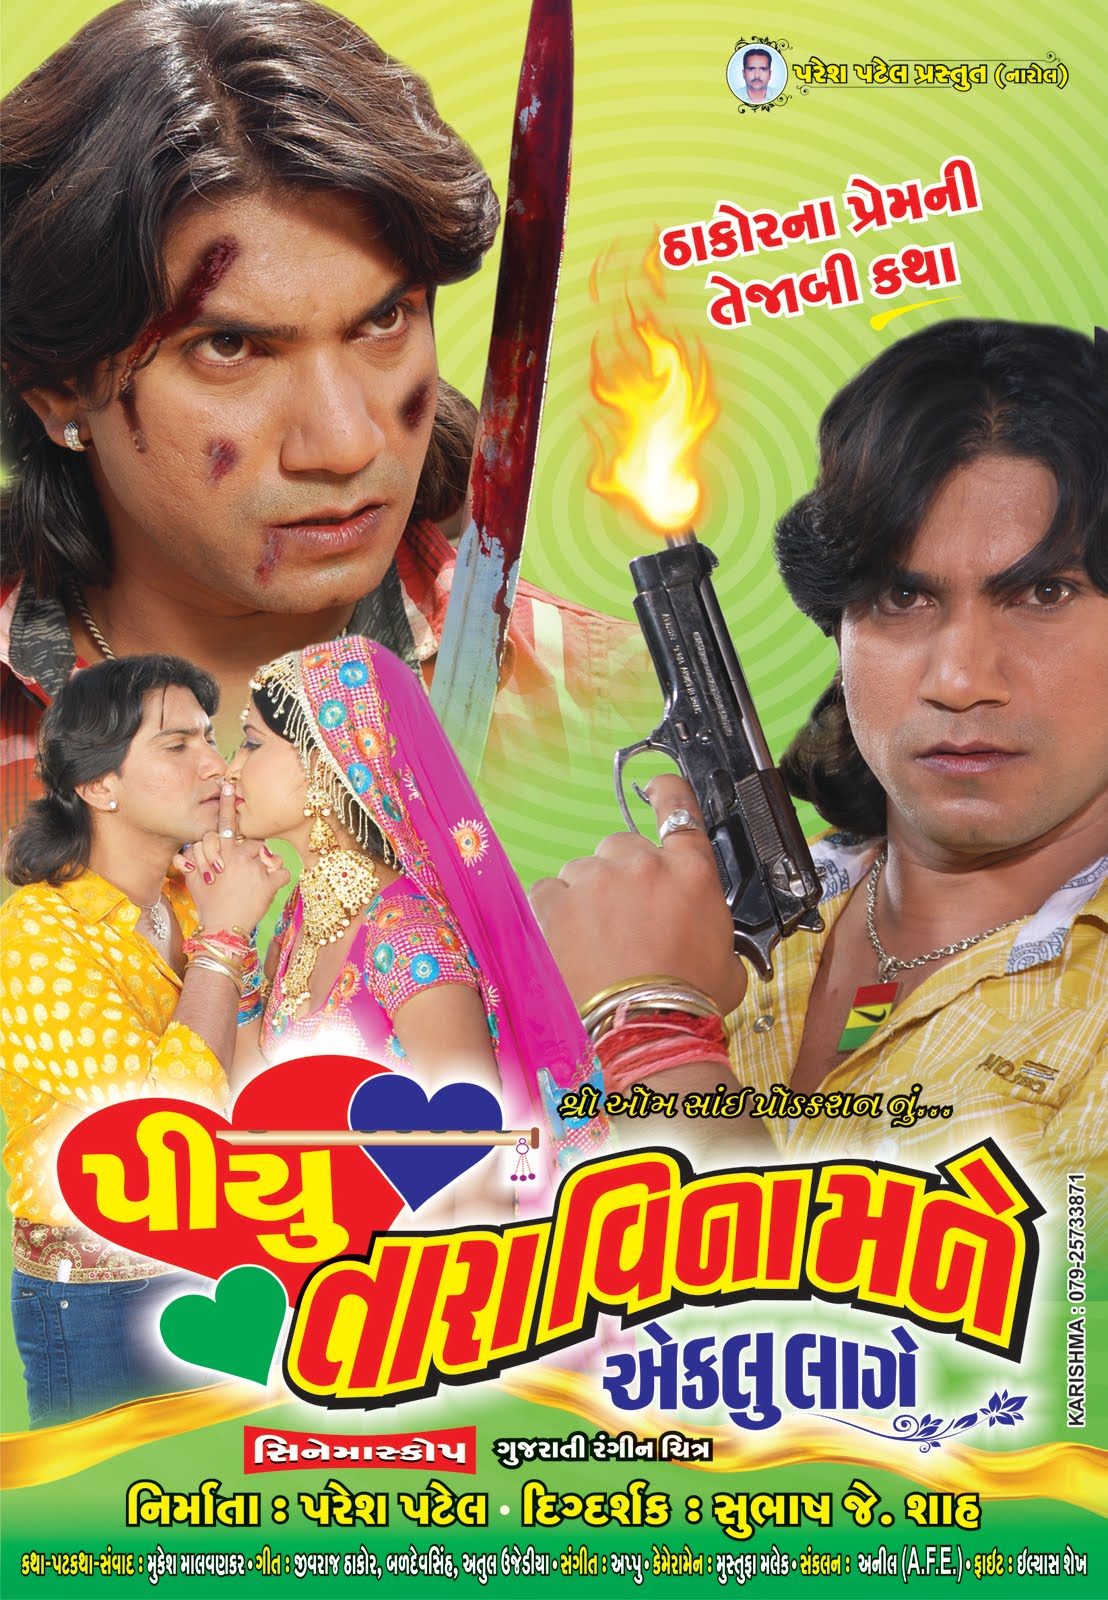 GUJARATI GUPSUP-NEWS: MOVIE POSTER VIKRAM THAKORE GUJARATI MOVIE STAR